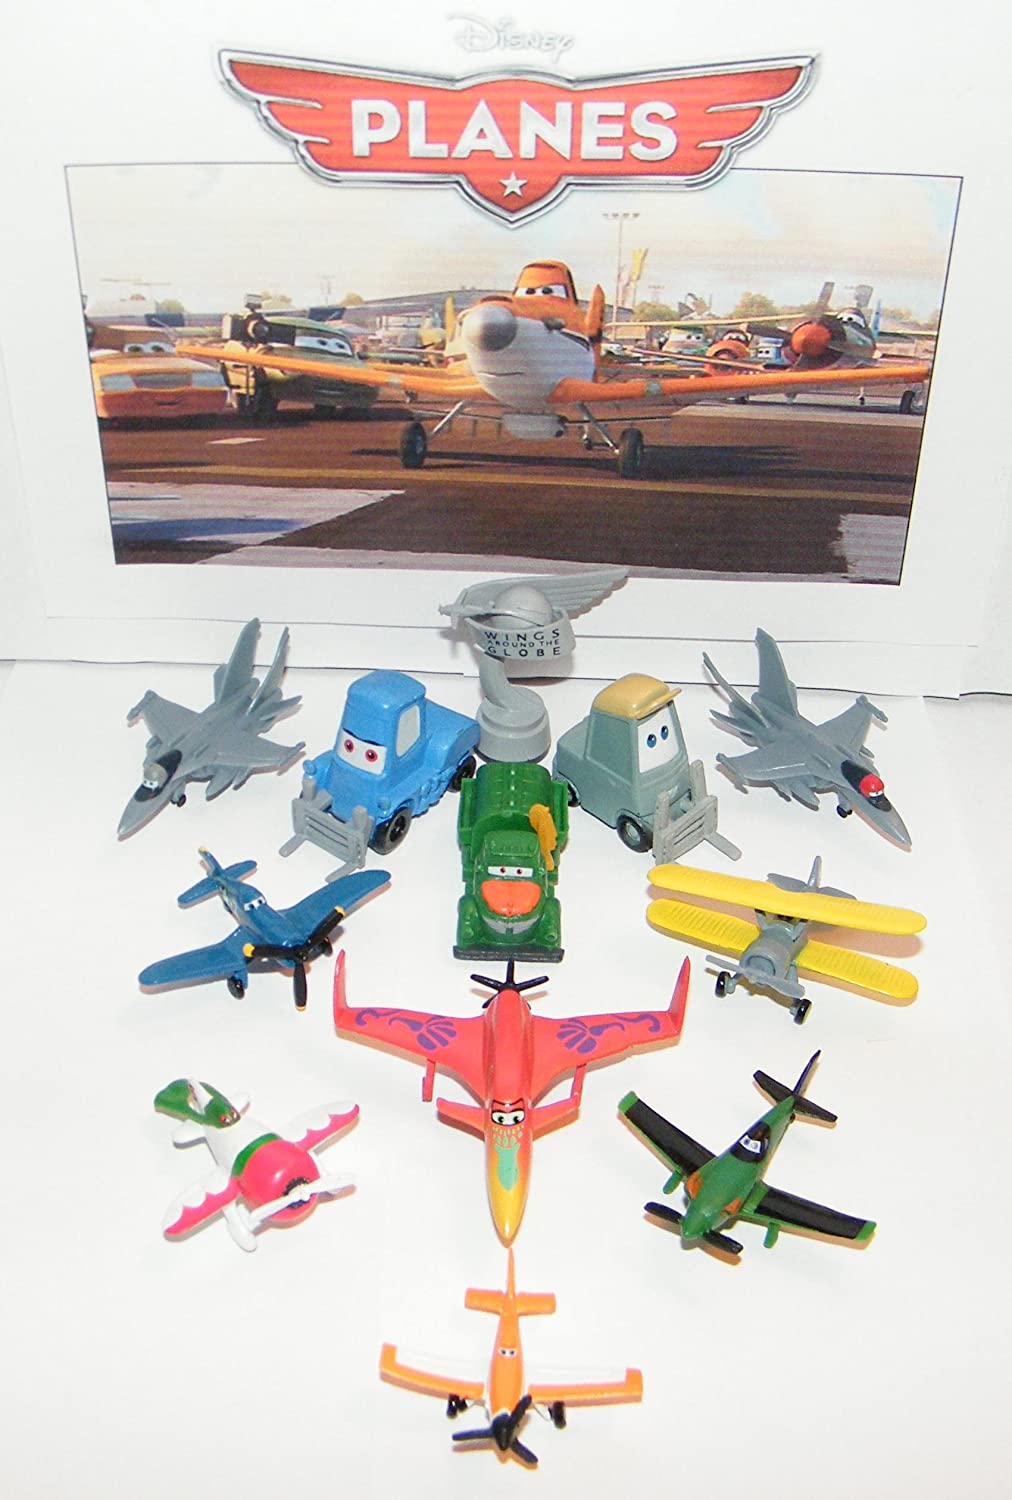 Disney Planes Movie Deluxe Mini Figure Set Toy Playset of 12 with Dusty, Rally Trophy, Racers, Jet Fighters and More!